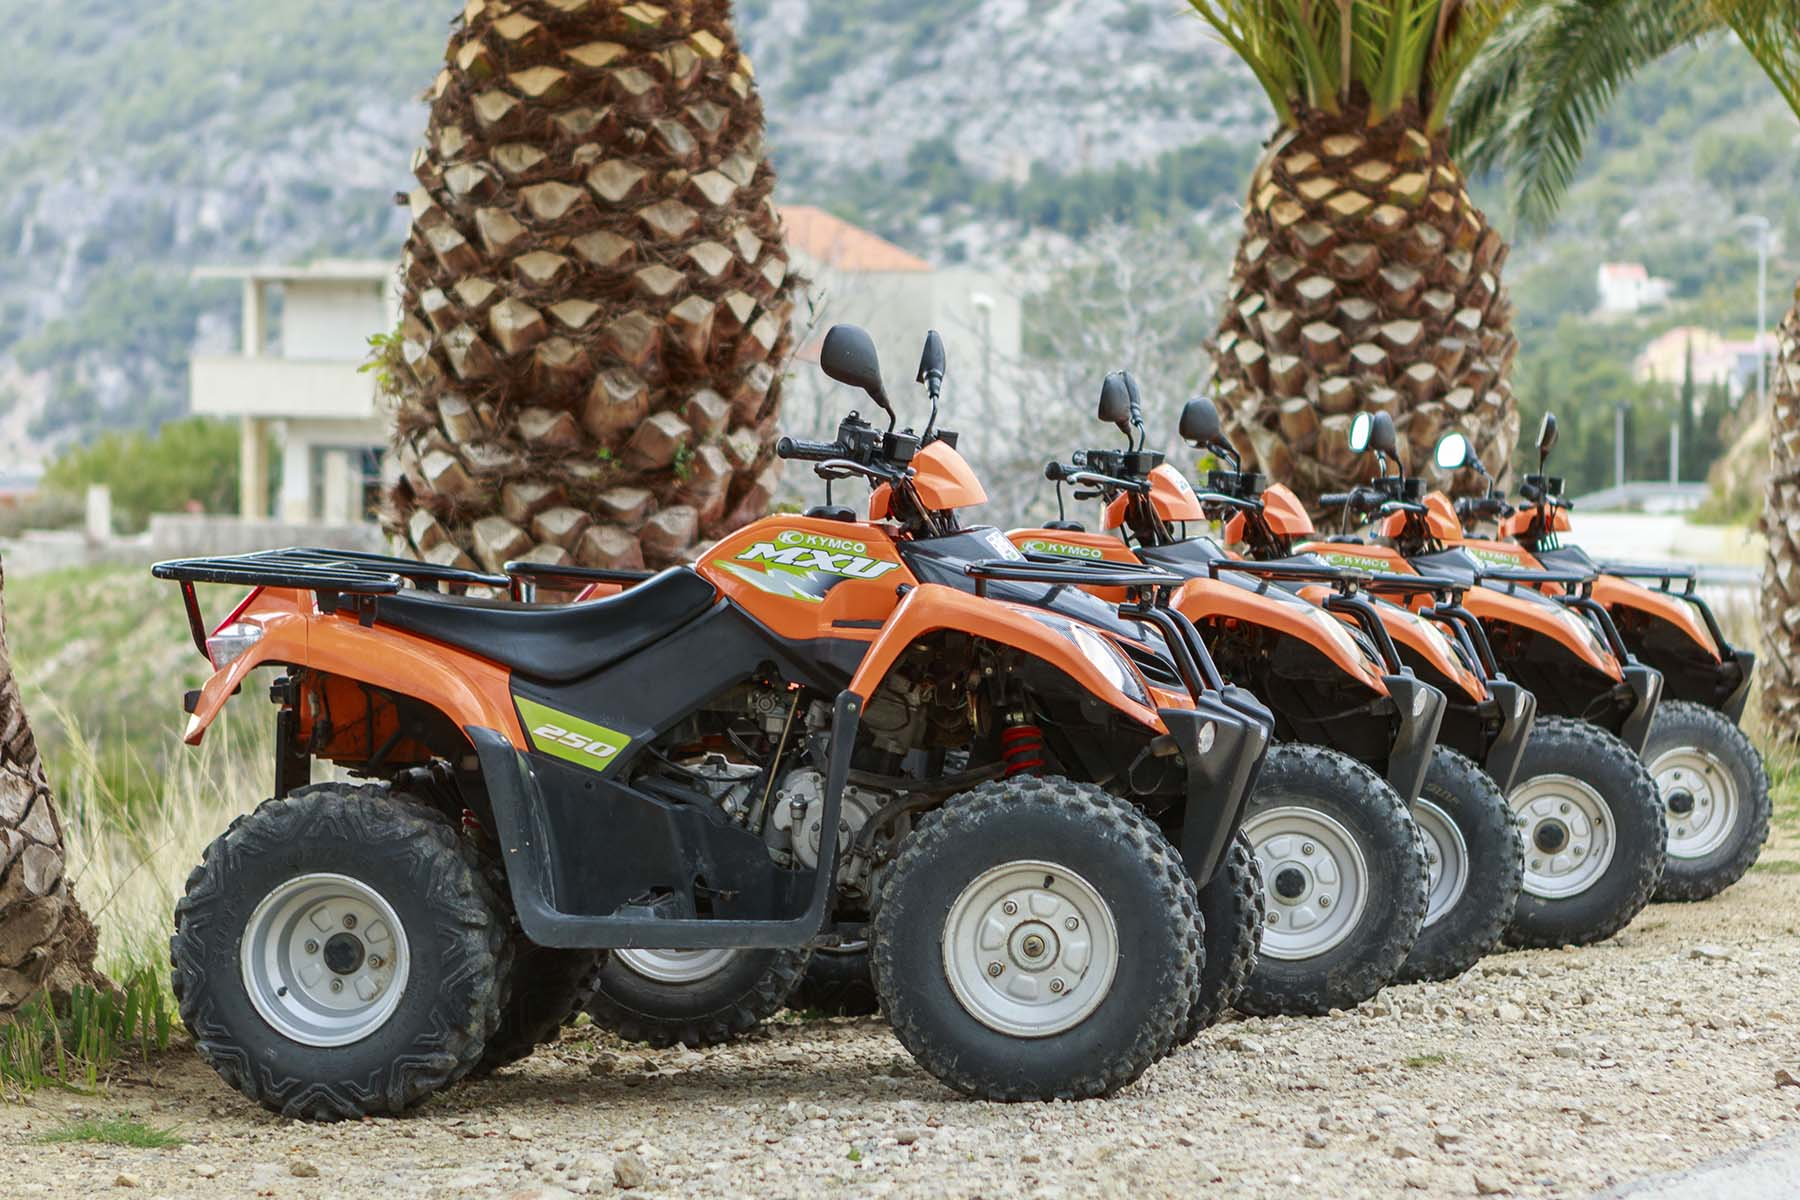 Safari quads